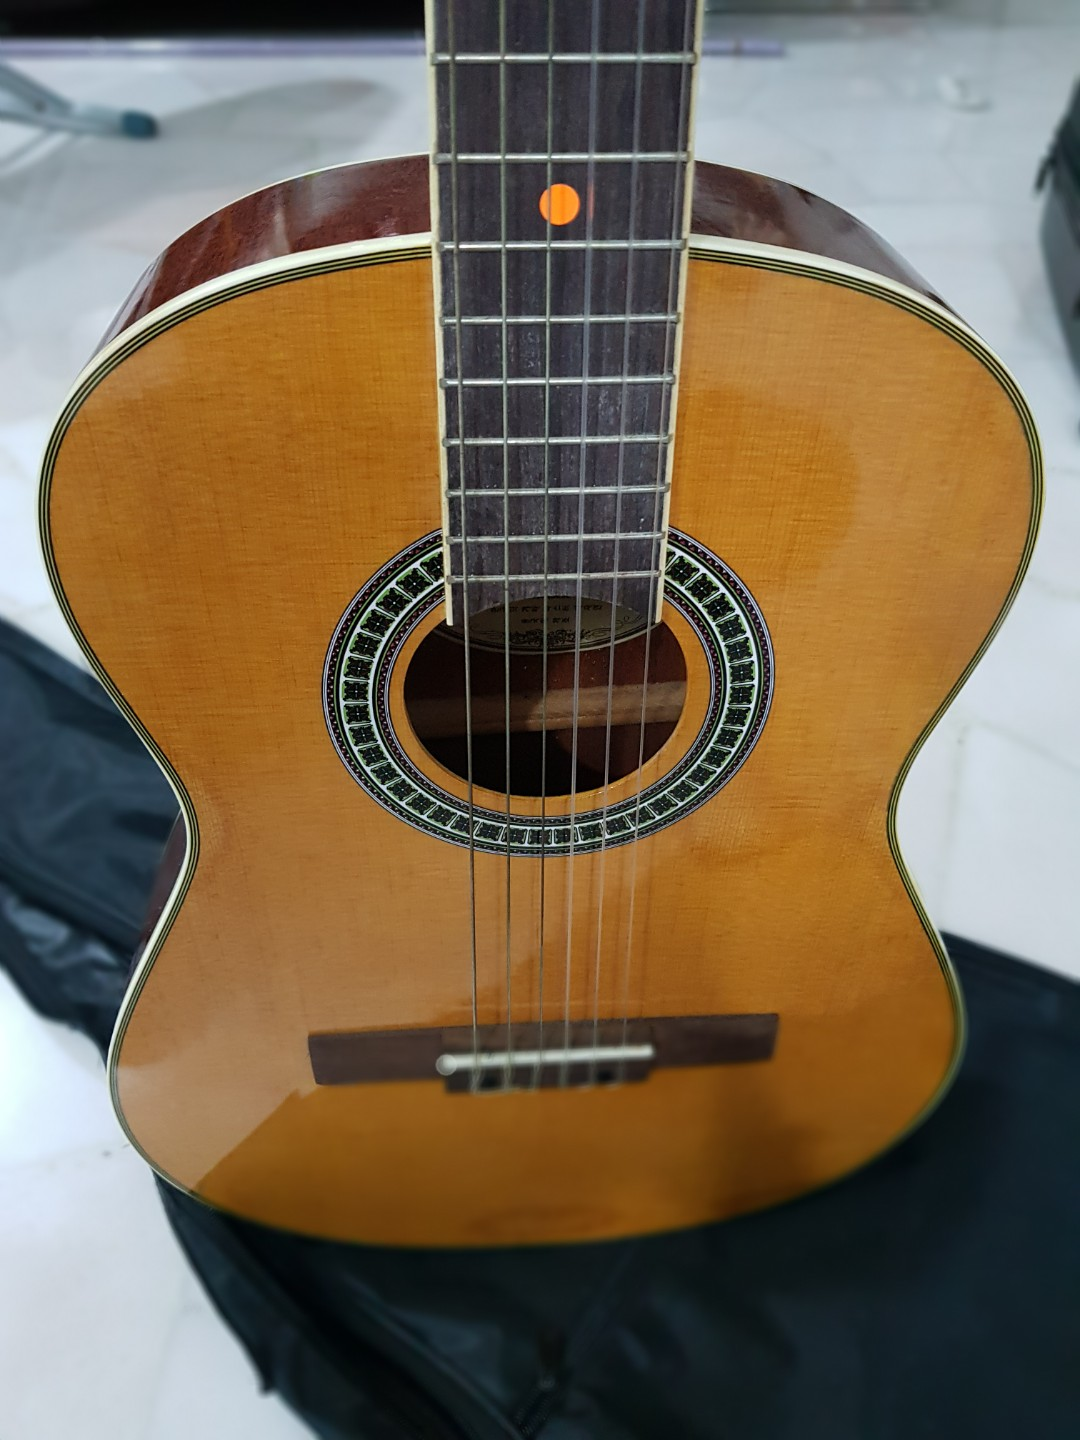 670a075142 3/4 classical guitar, Music & Media, Music Instruments on Carousell